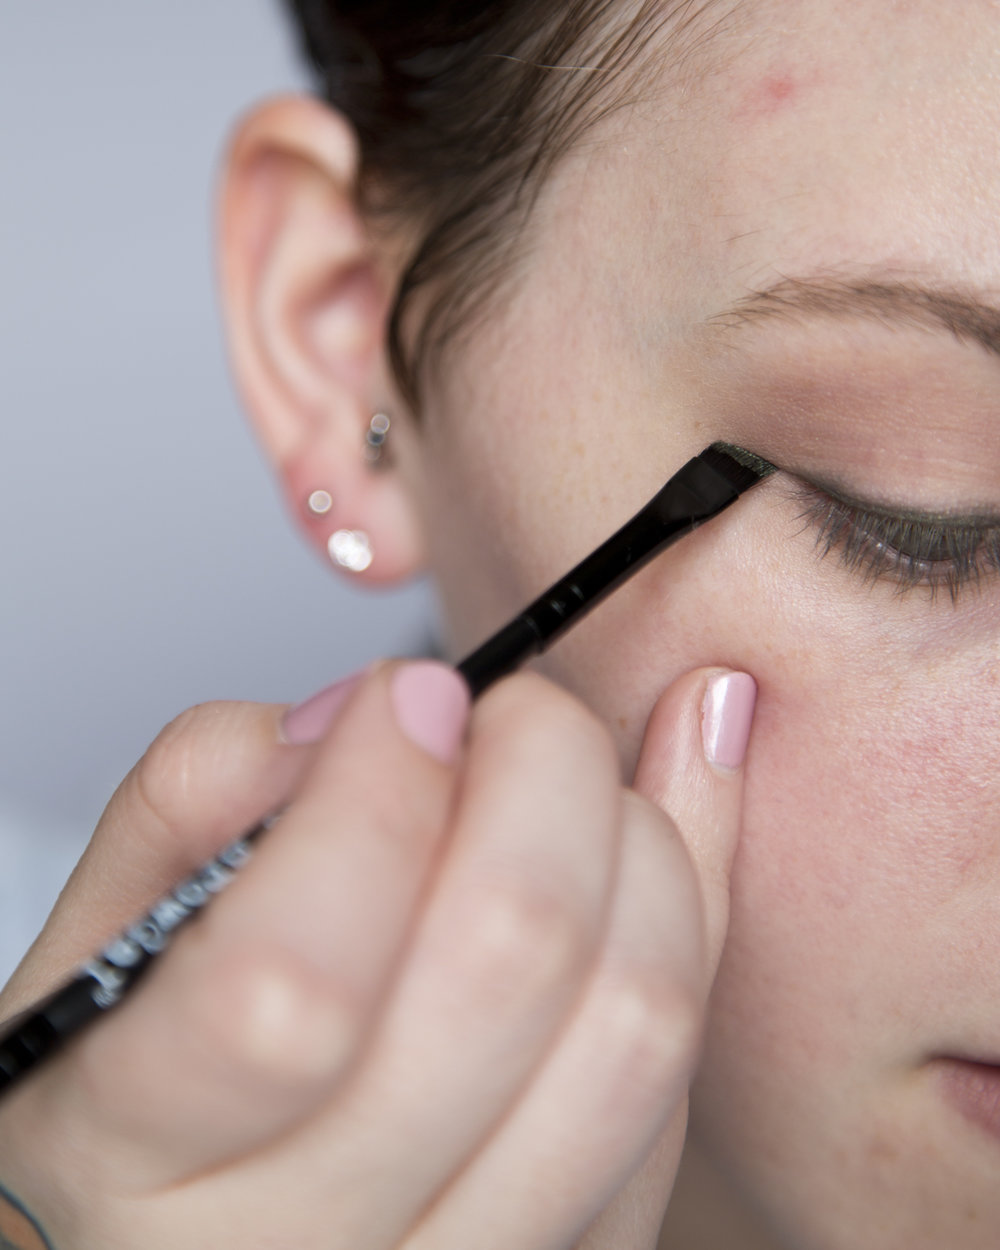 To create the wing I just ran the brush over the eyeliner - great way to create a wing or get more precision out of pencil eyeliners.